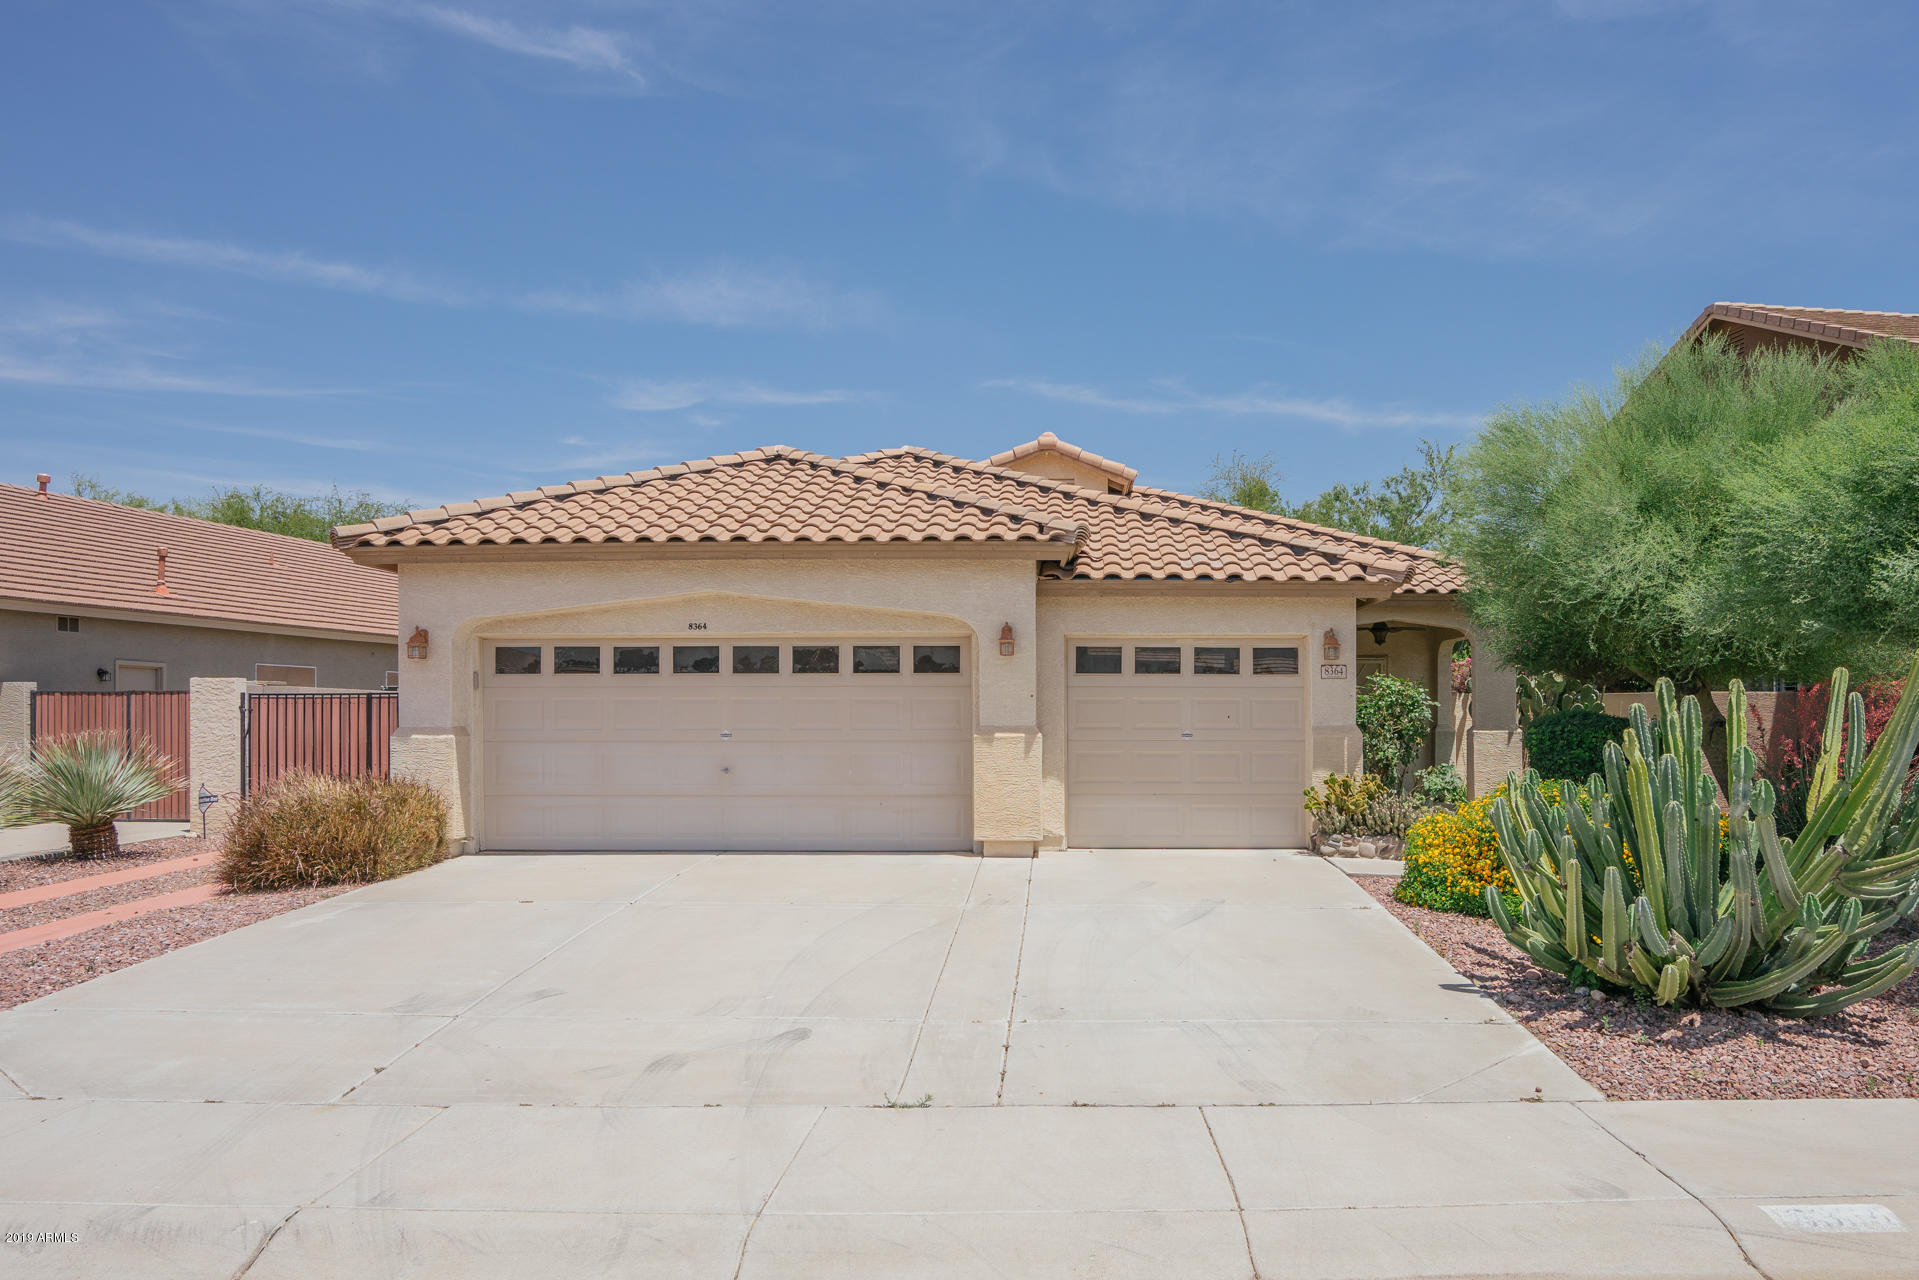 8364 W MARY ANN Drive, Peoria in Maricopa County, AZ 85382 Home for Sale